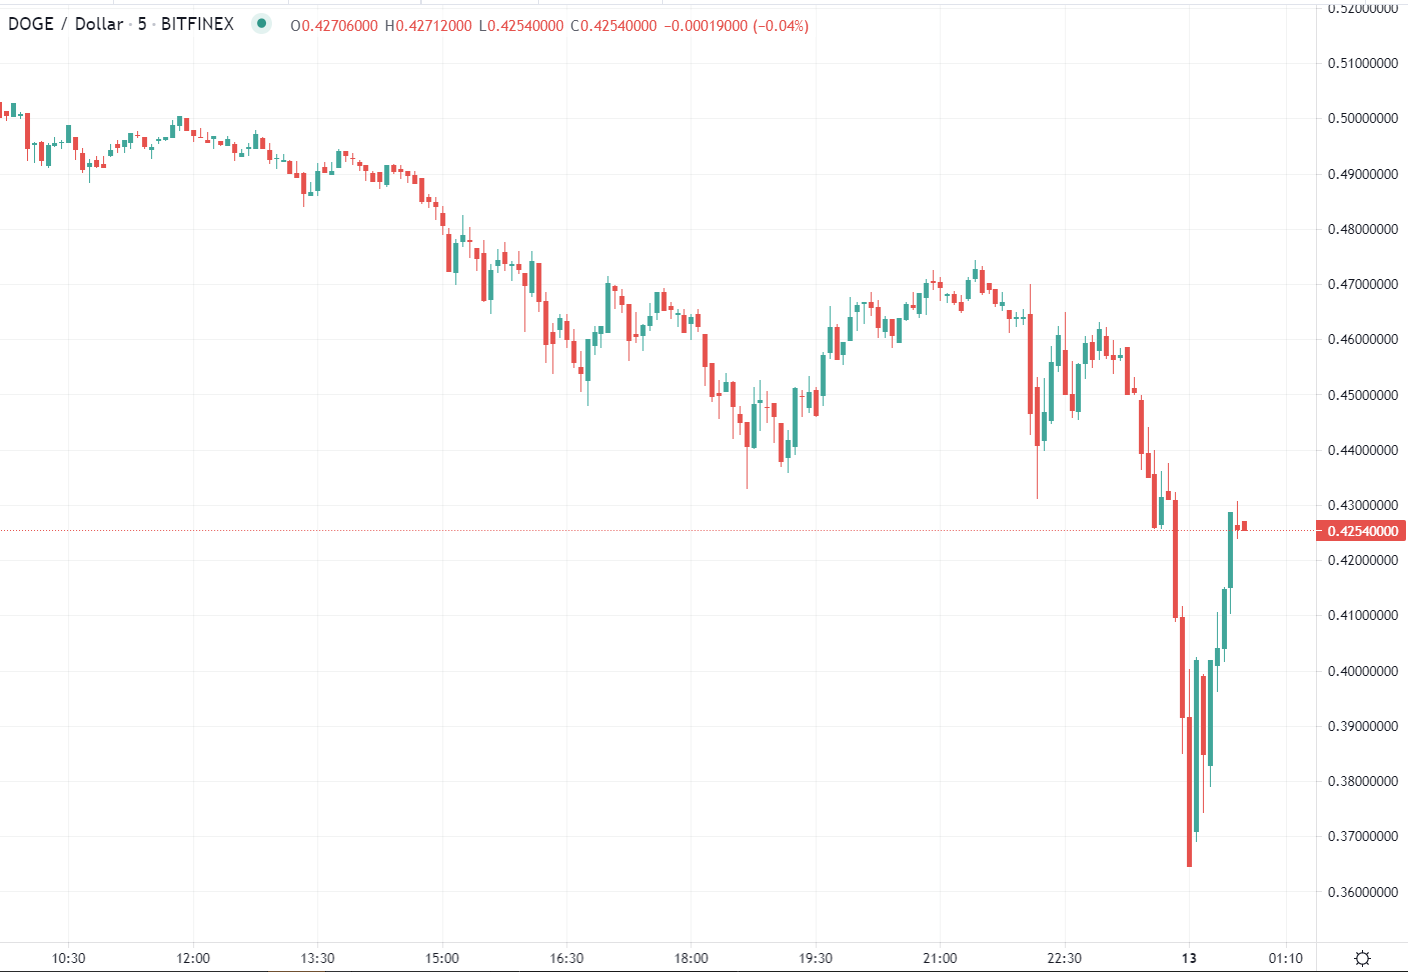 Bitcoin bounce, back above $50K. Other coins on the bounce also, DOGE back over 42c